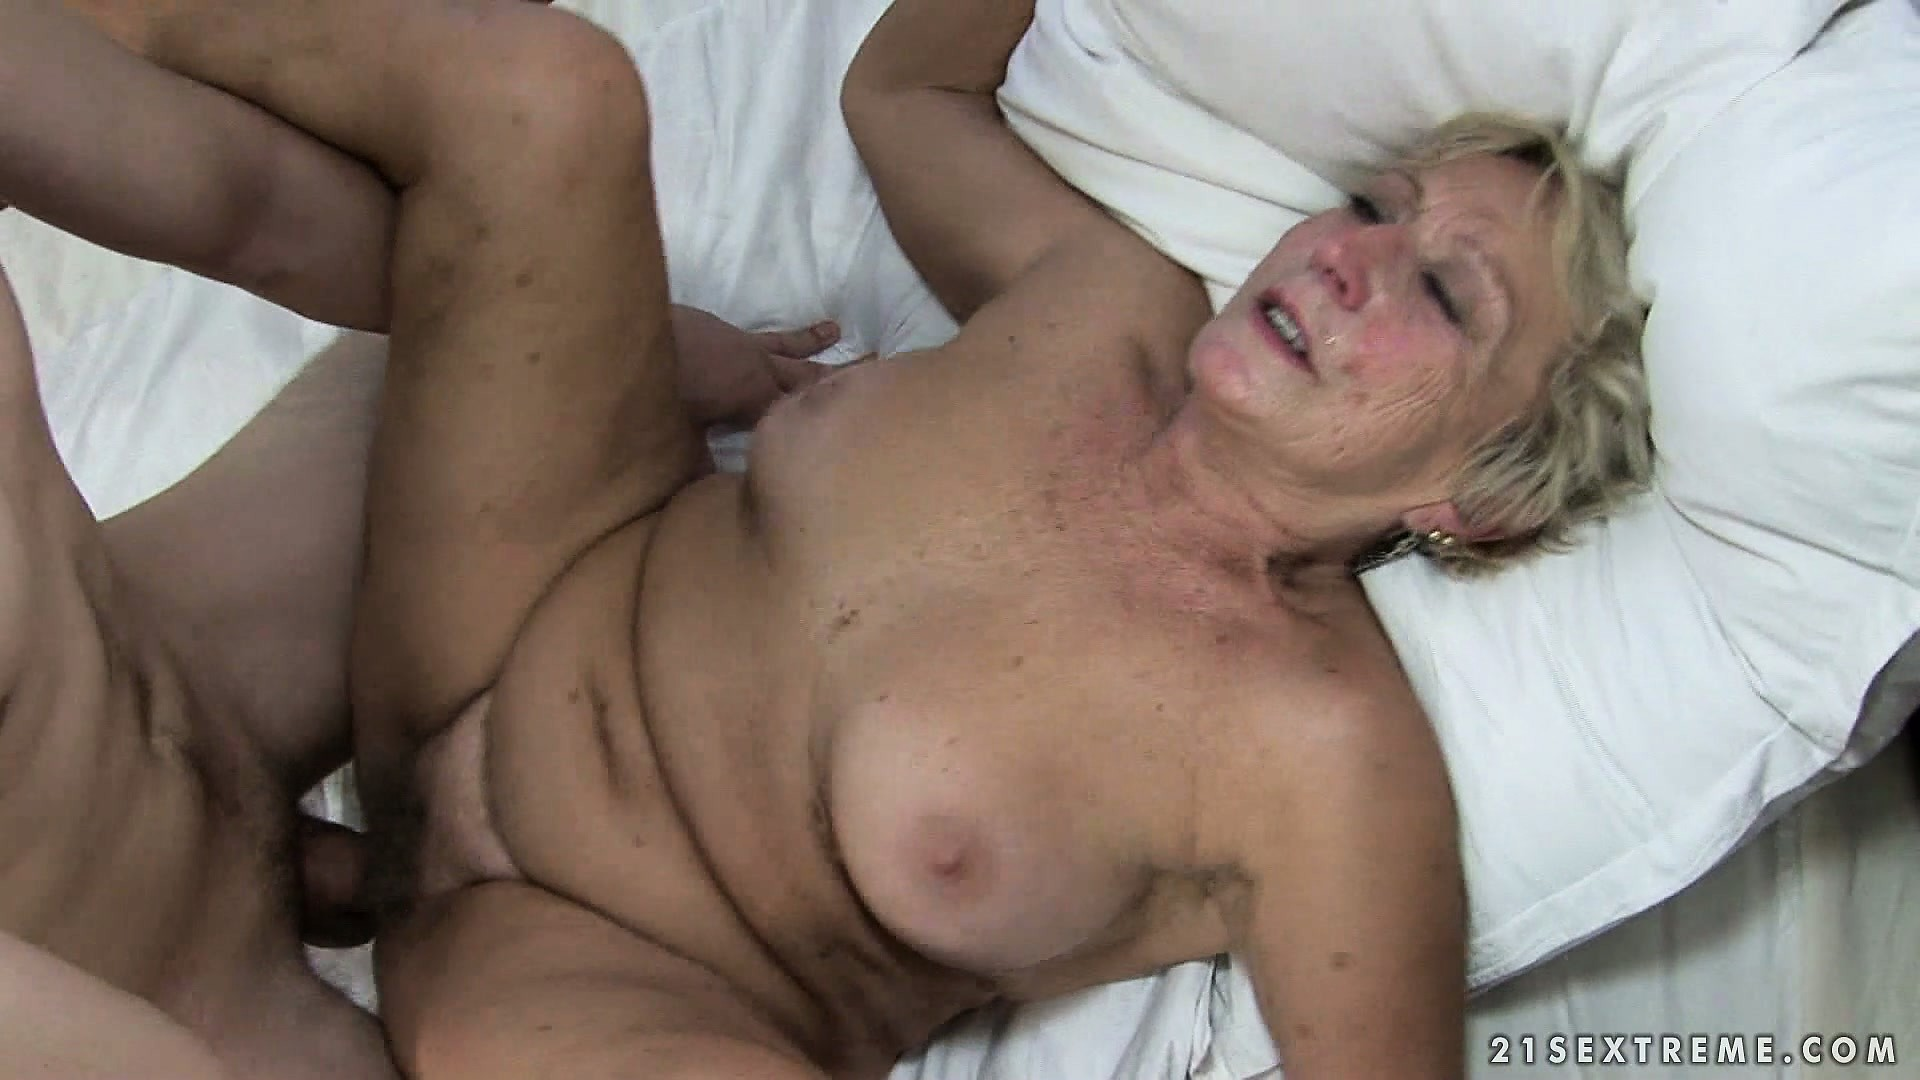 Porn Tube of Horny Young Man Pounds Her Granny Bush And Cums On Her Wrinkly Face